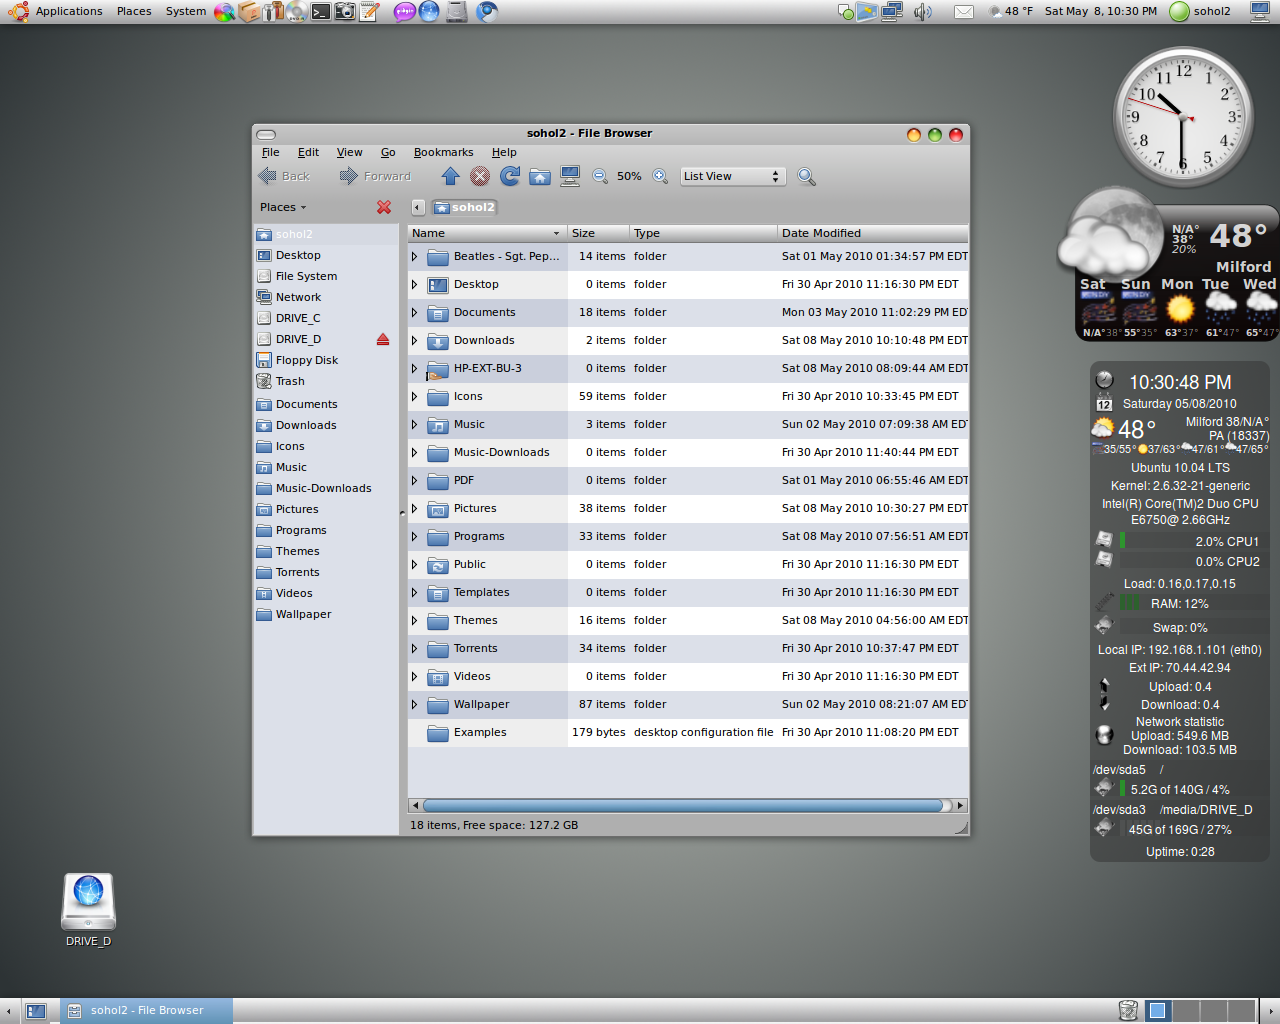 jfn linux project: Oxygen Blend Theme is a real OSX Leopard clone